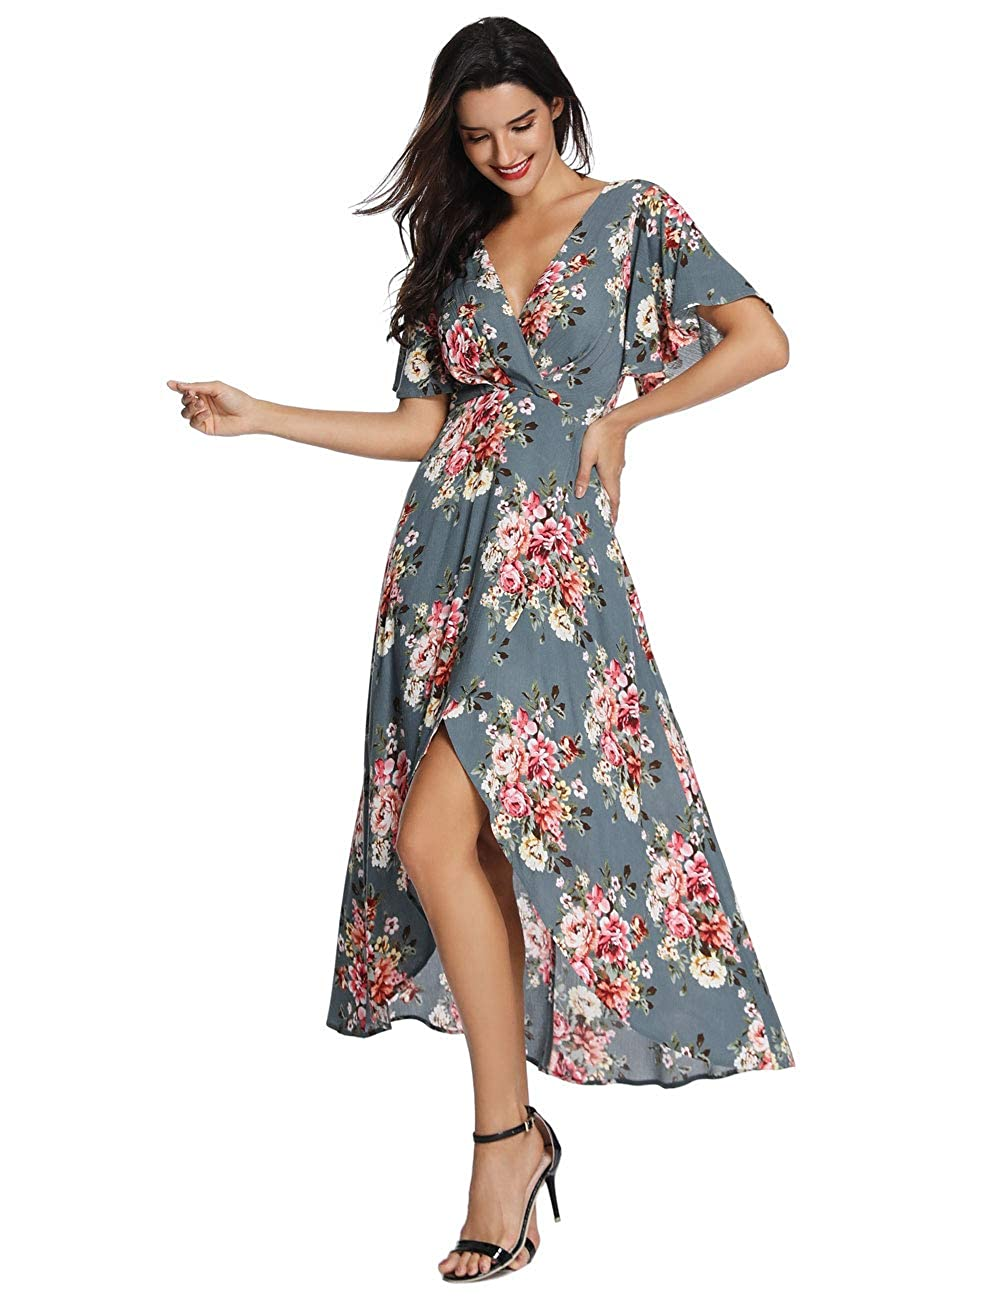 Azalosie Wrap Maxi Dress Short Sleeve V Neck Floral Flowy Front Slit High  Low Women Summer Beach Party Wedding Dress at Amazon Women s Clothing store  b4f835e29